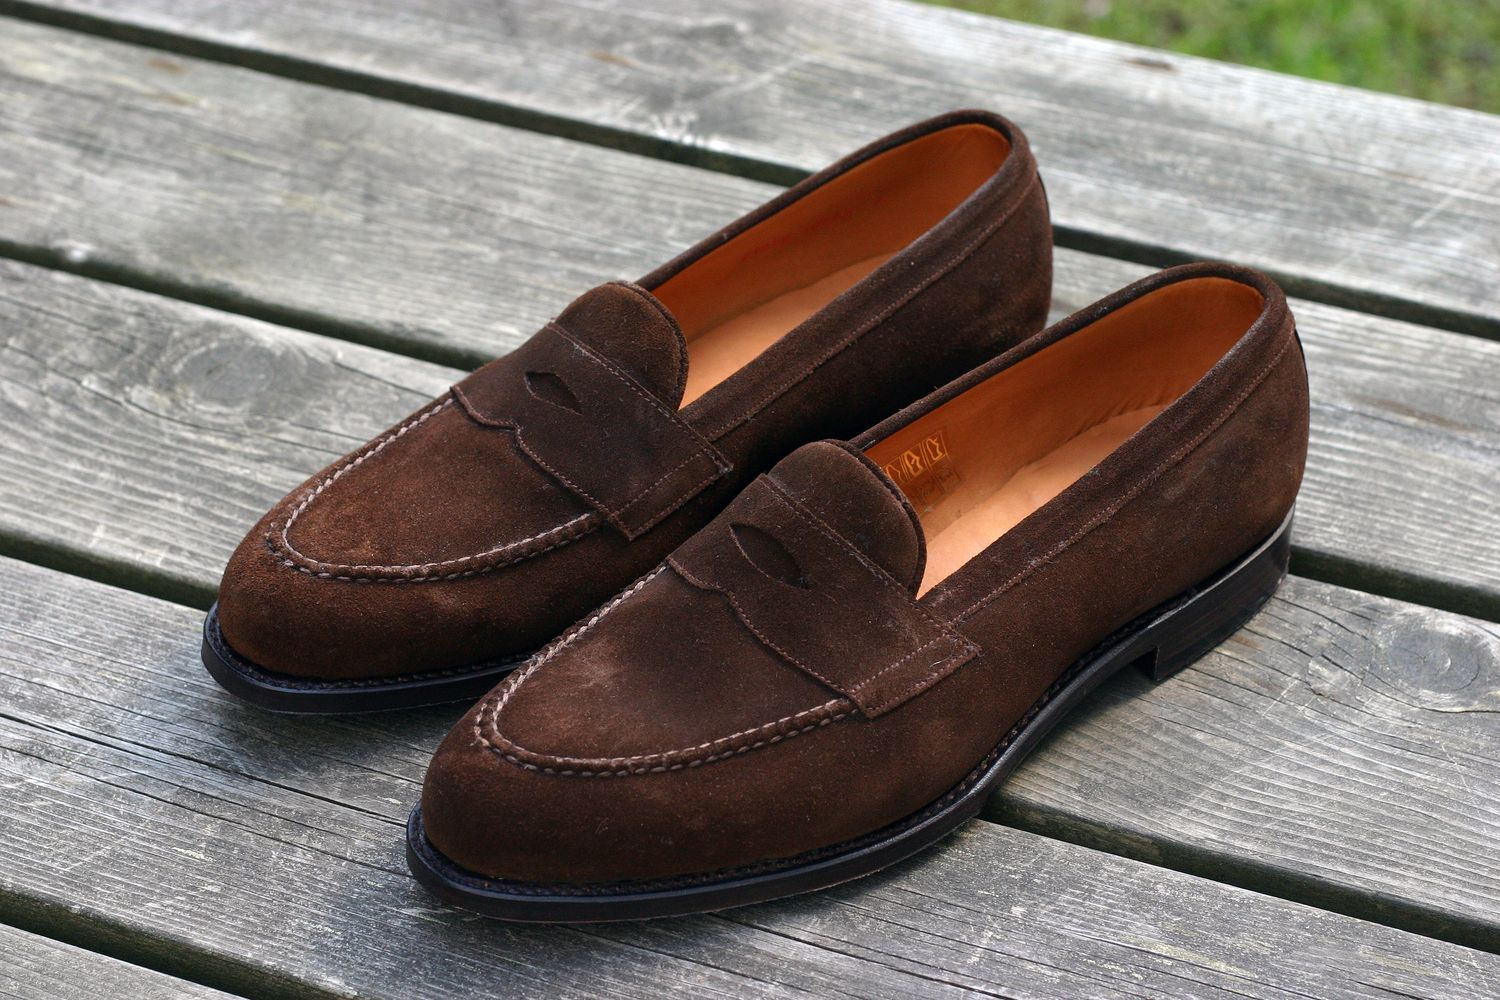 3e96461c6cc1 The brown calf tassel loafers I got from Septième Largeur earlier have been  fantastic